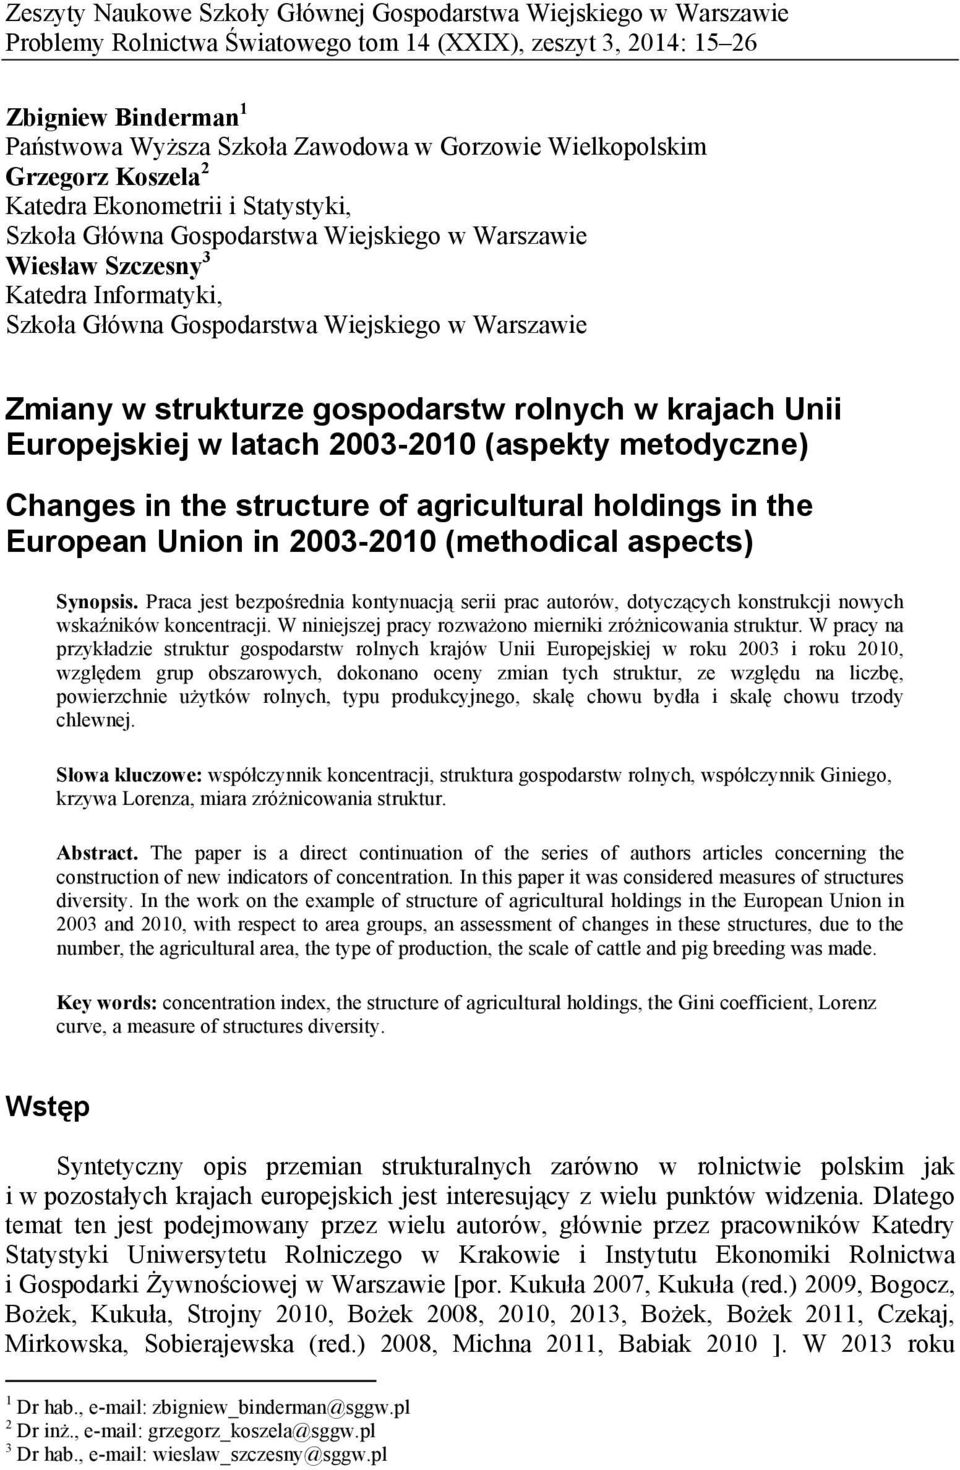 Warszawie Zmiany w strukturze gospodarstw rolnych w krajach Unii Europejskiej w latach 2003-2010 (aspekty metodyczne) Changes in the structure of agricultural holdings in the European Union in